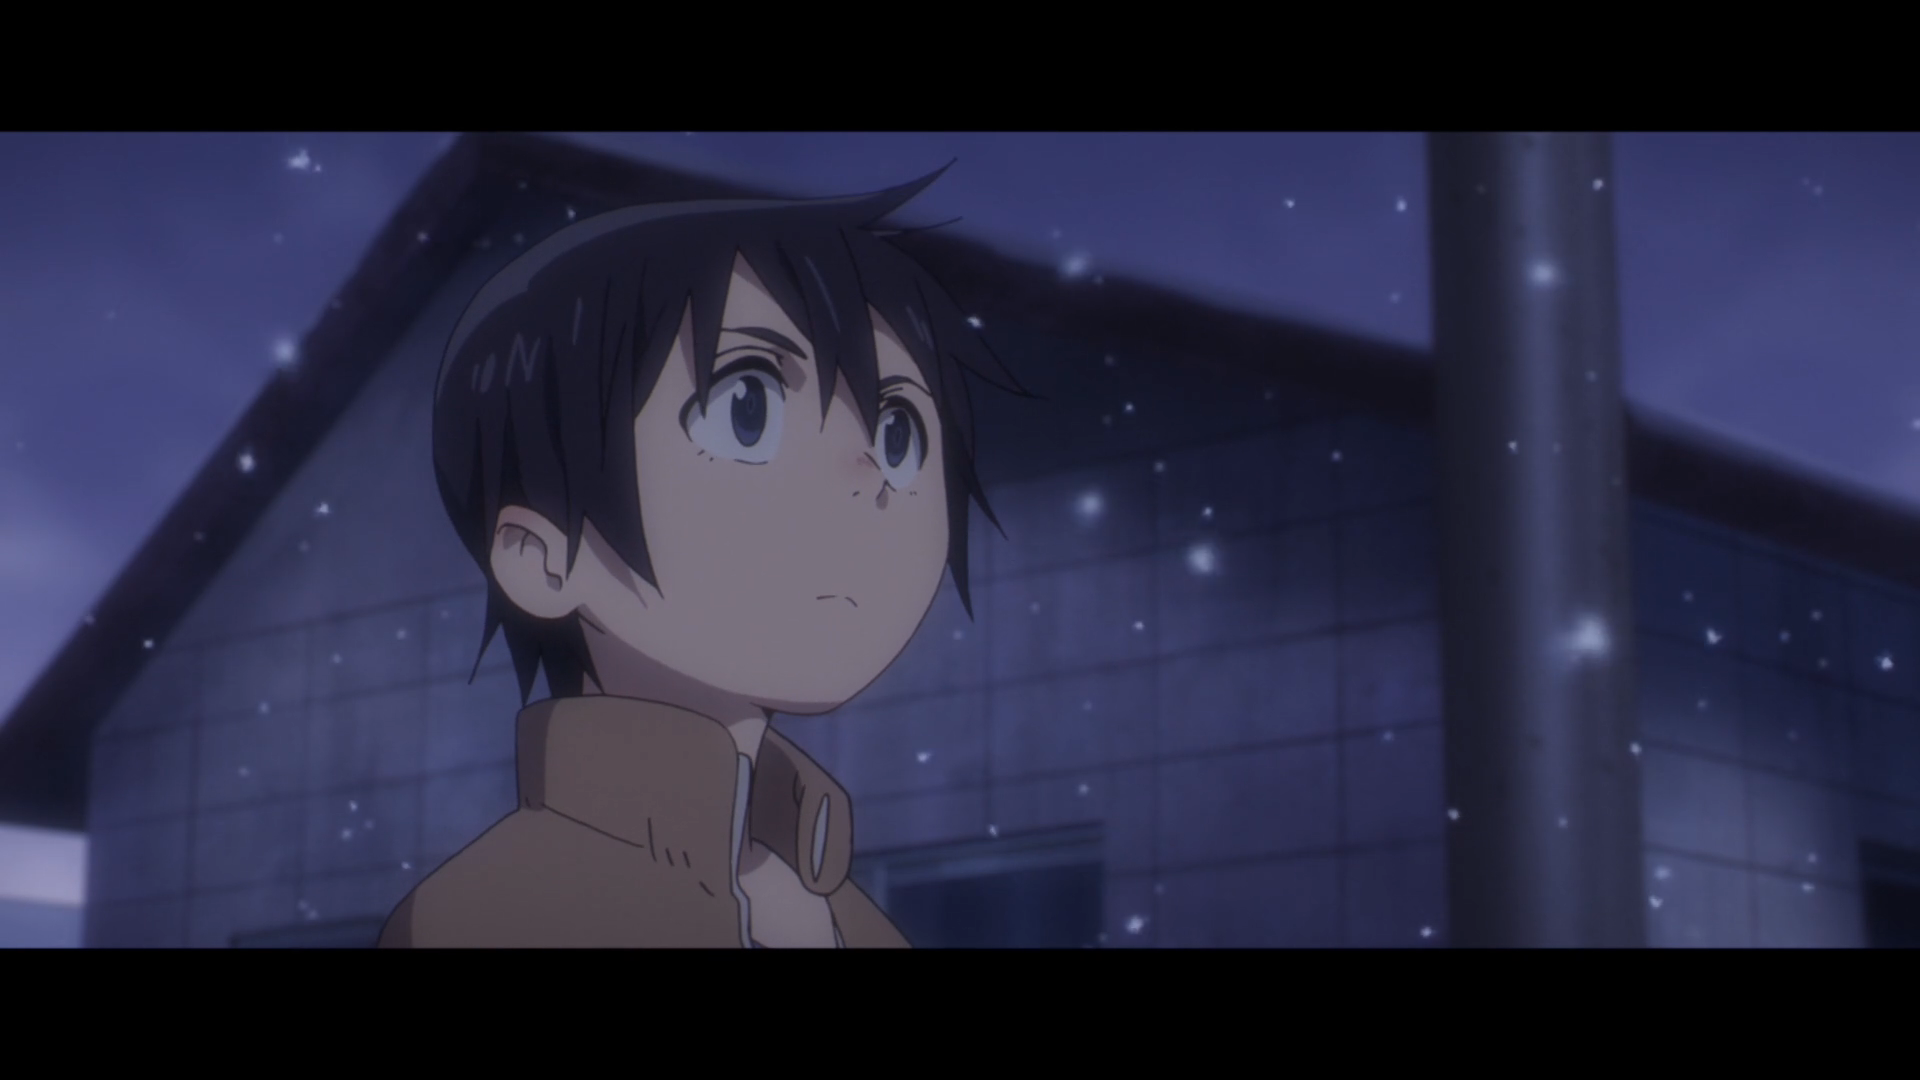 Erased episode 9 satoru looking up at the wintry sky